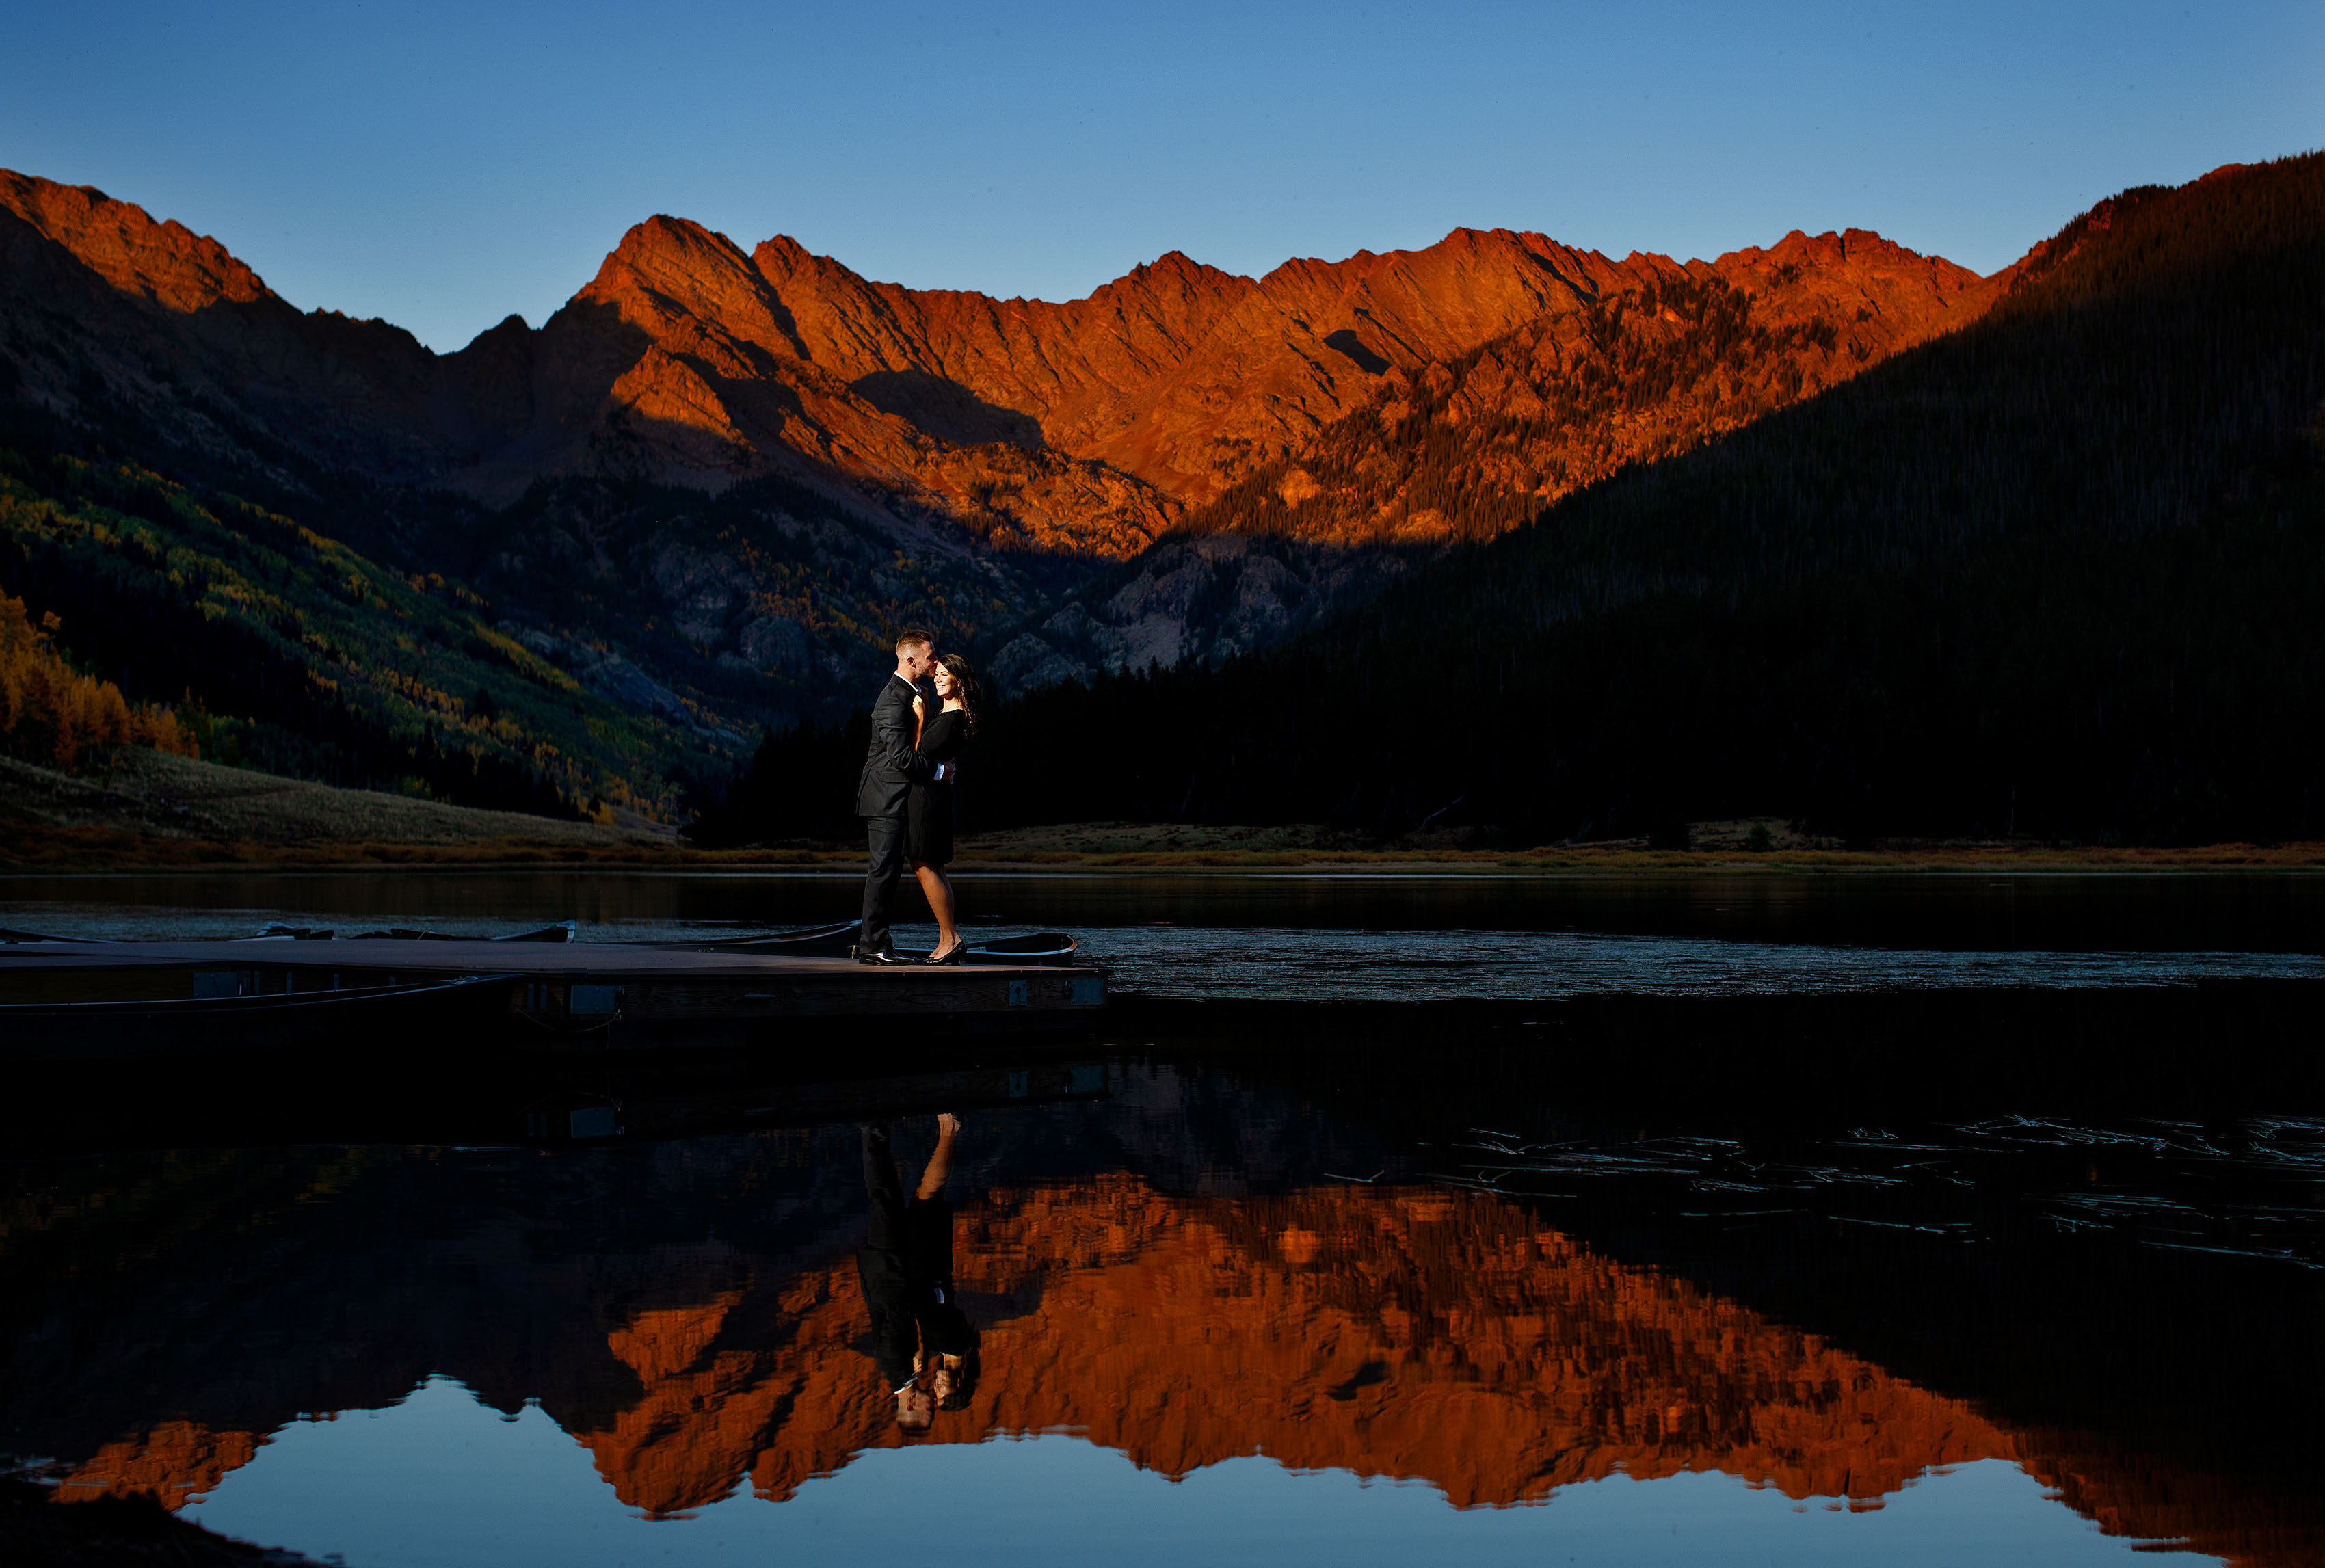 Brendan and Caroline pose on the dock as the sun sets on the Gore mountain range during their fall Piney River Ranch engagement in Vail Colorado